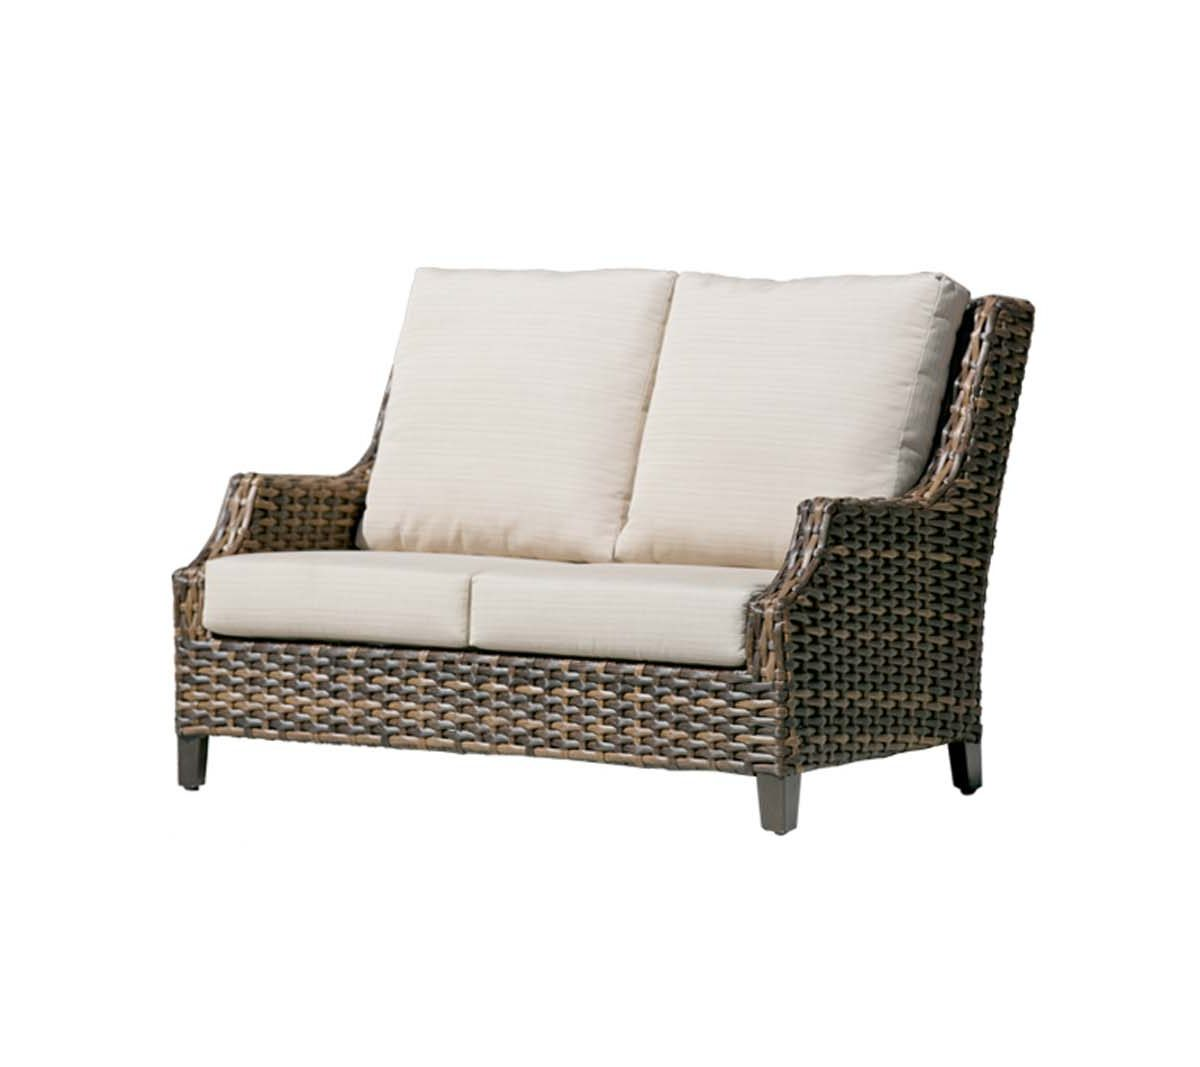 whidbey island love seat | Patio Bay